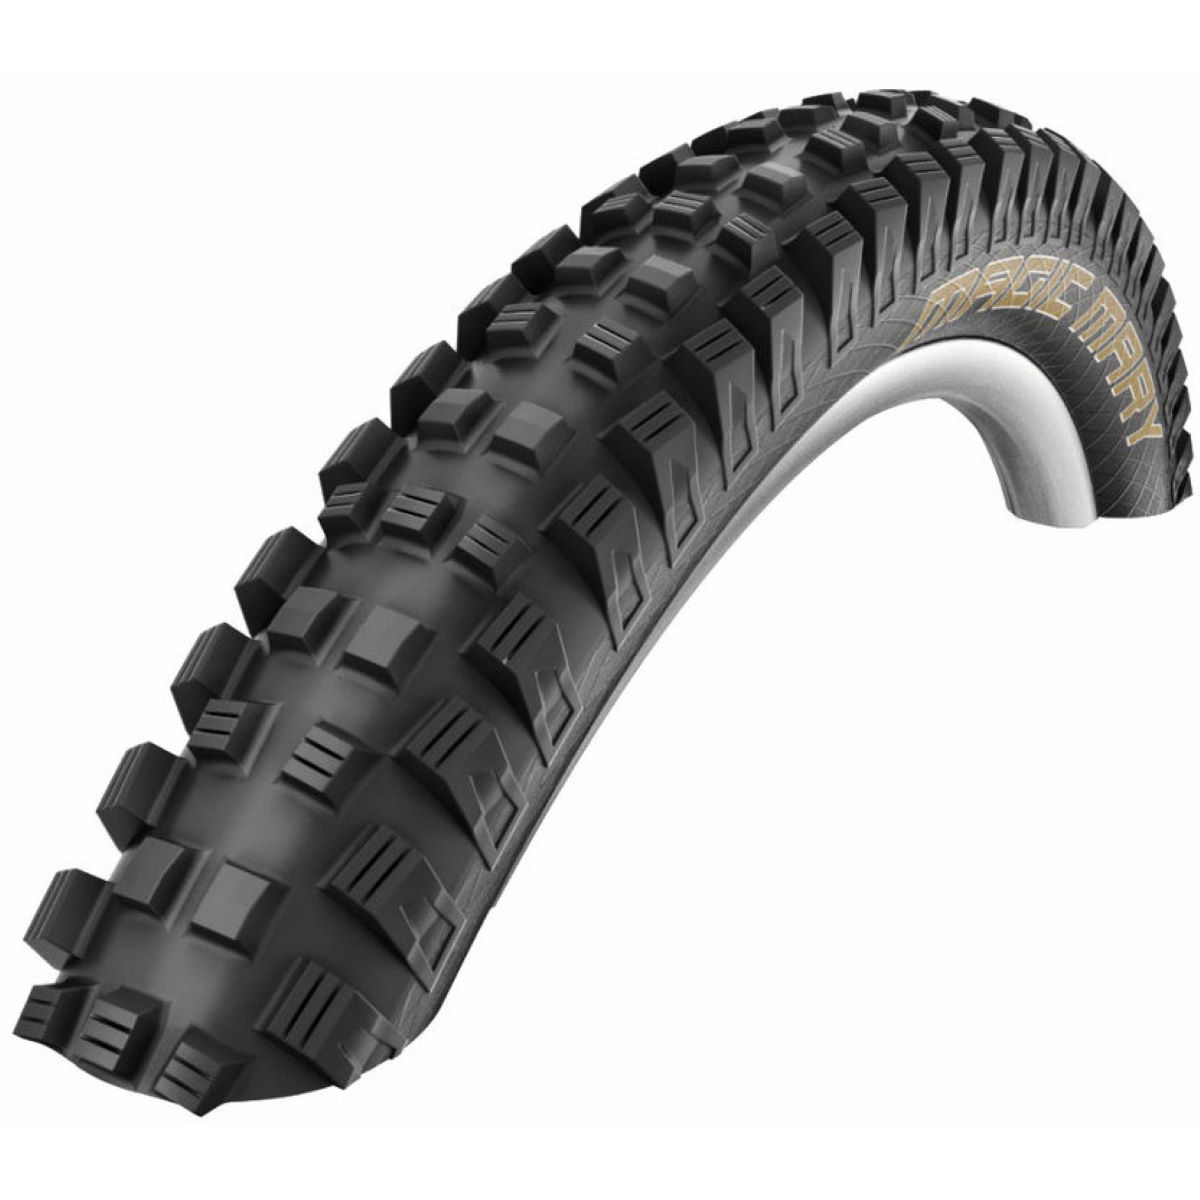 Pneu pliable VTT Schwalbe Magic Mary Snakeskin TL Easy - 26 x 2.35 Noir Pneus VTT